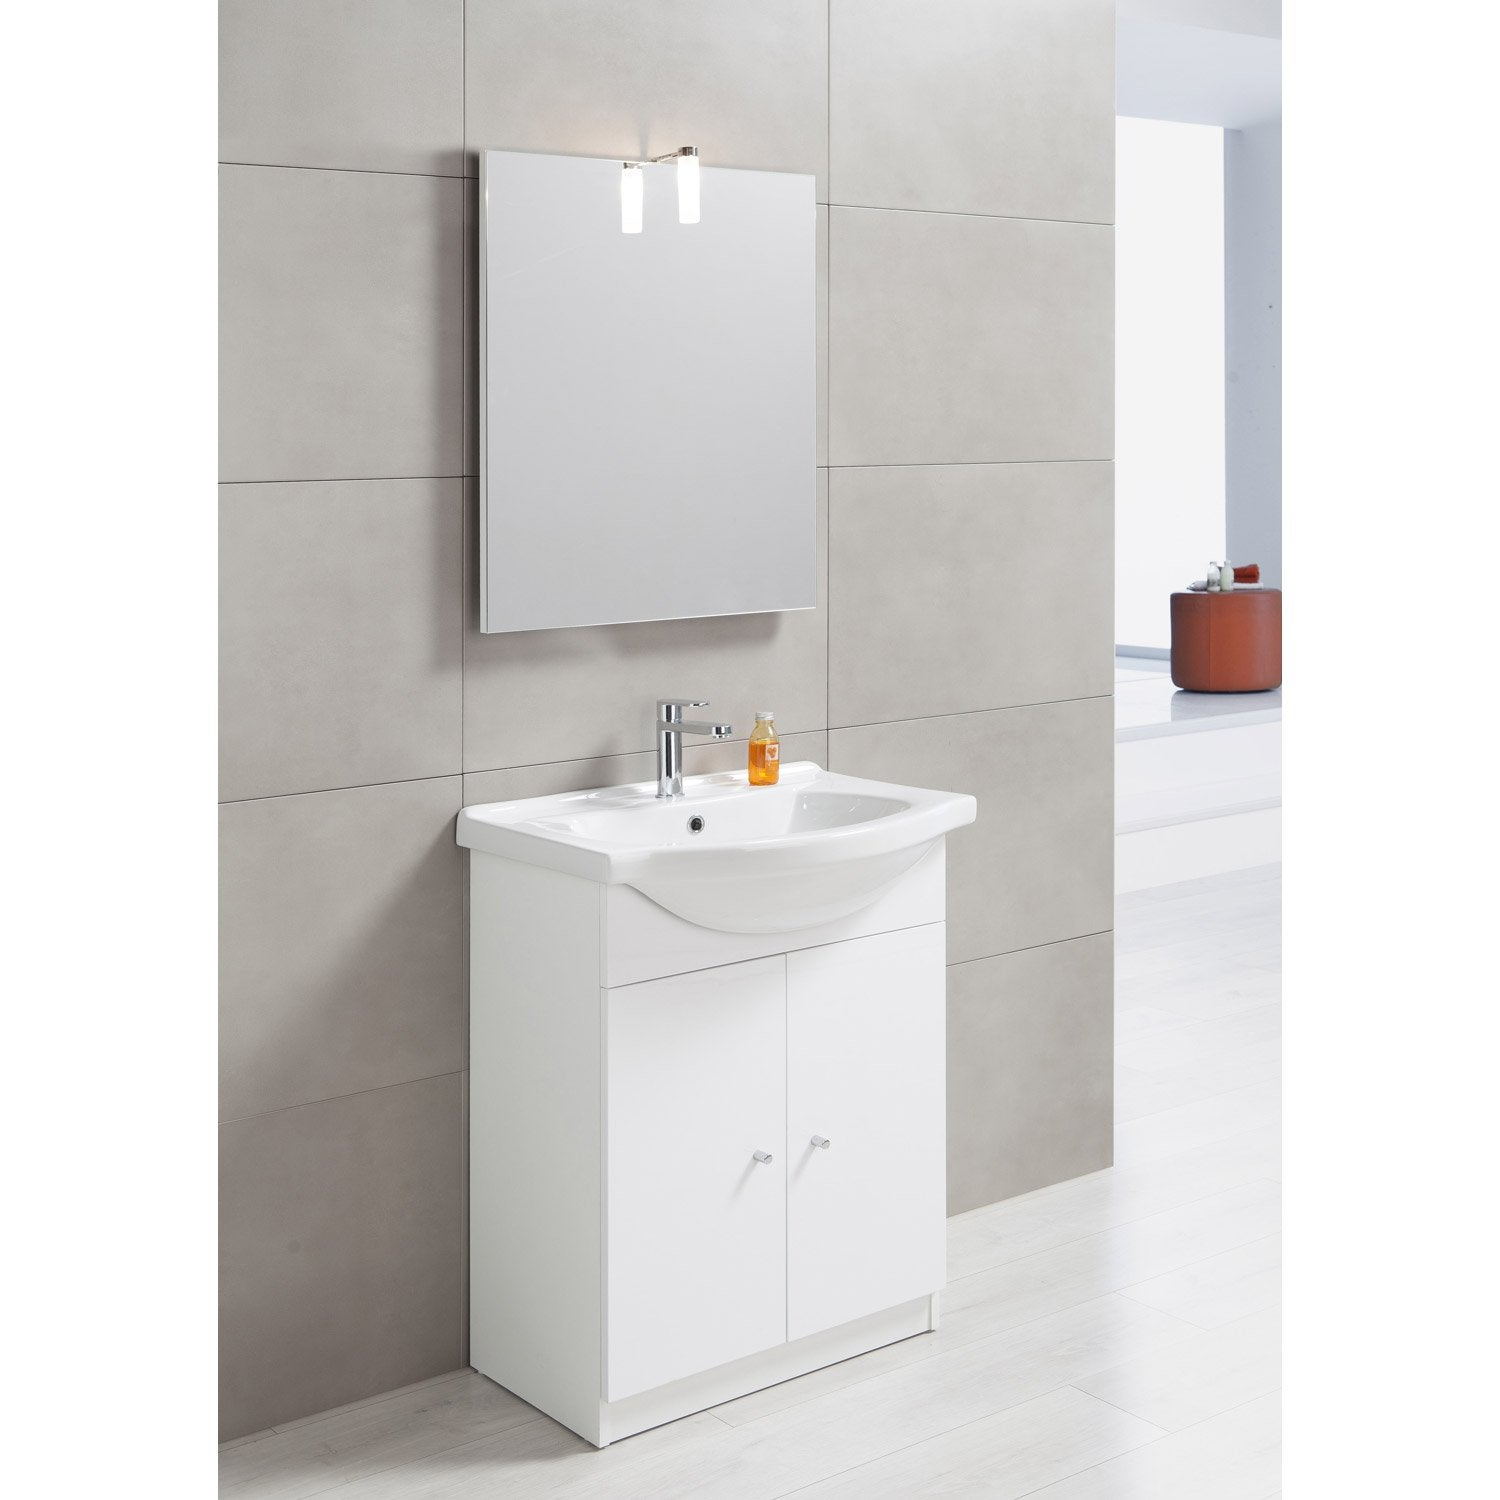 Meuble vasque 65 cm blanc bianca leroy merlin for Ensemble lavabo meuble leroy merlin